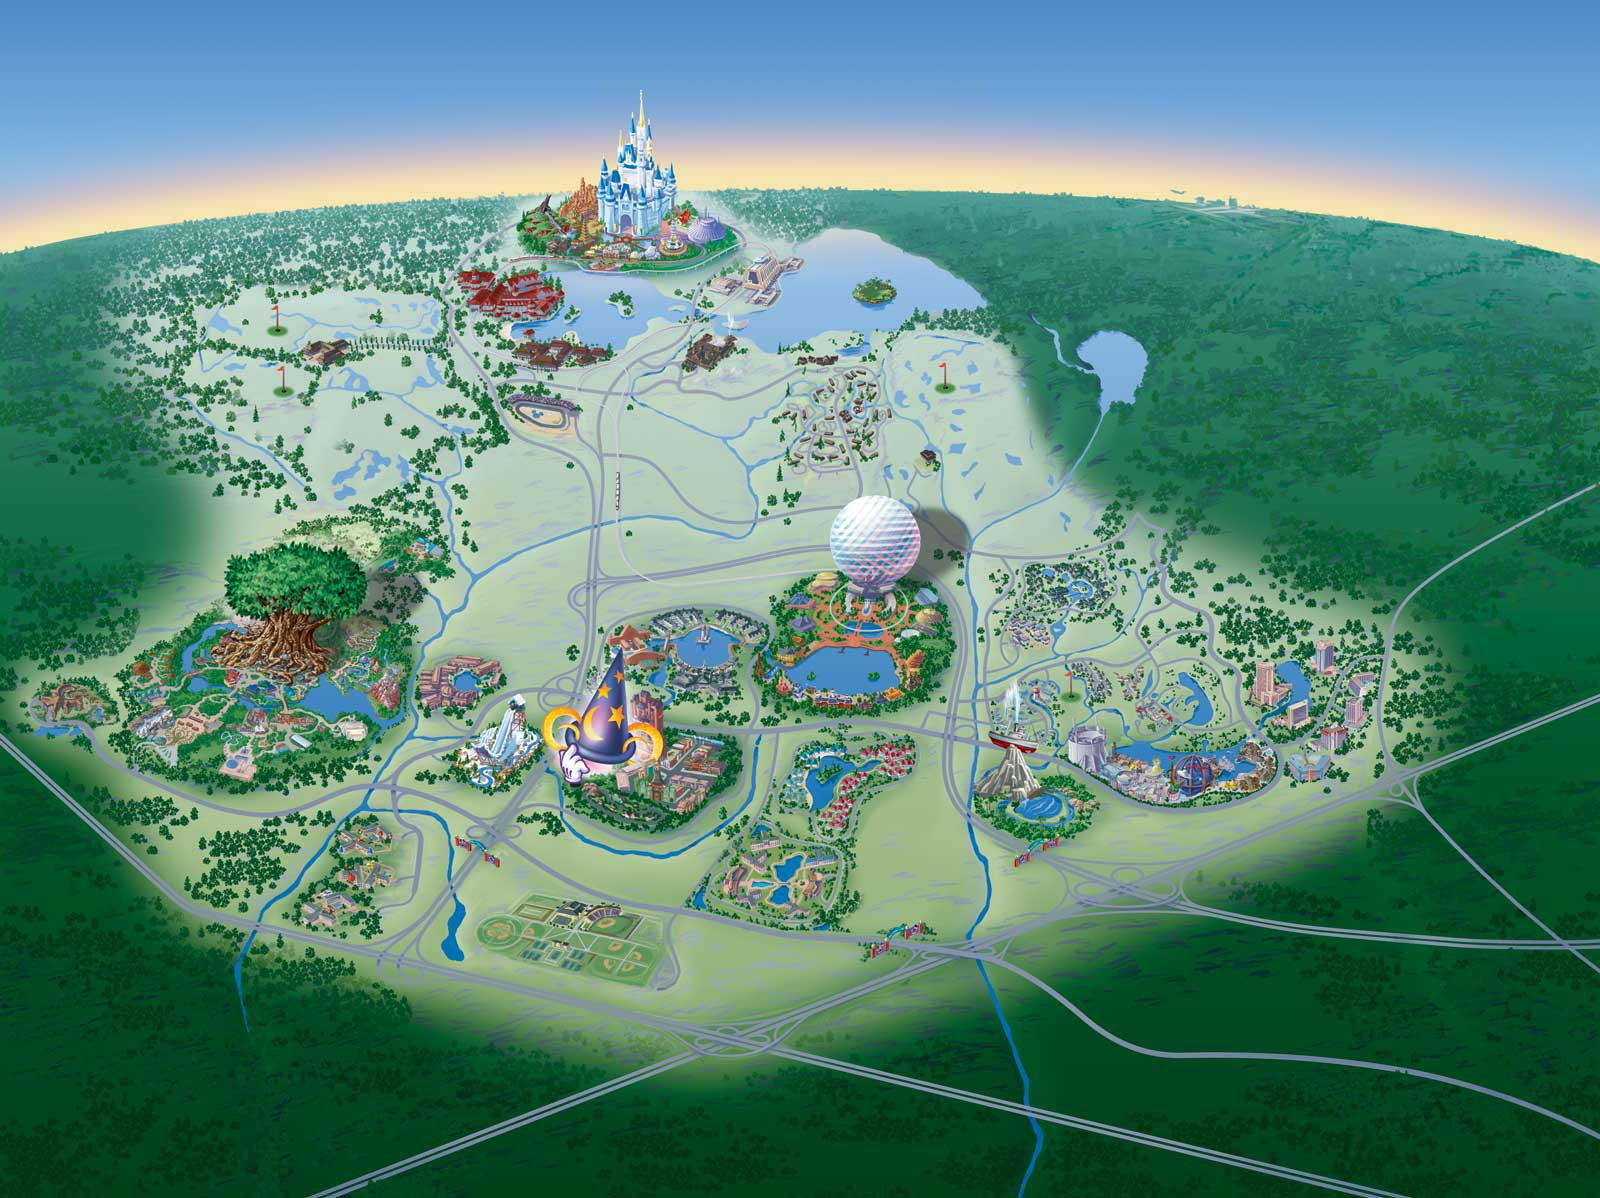 Map Of Walt Disney World Resort - Wdwinfo - Map Of Florida Showing Disney World